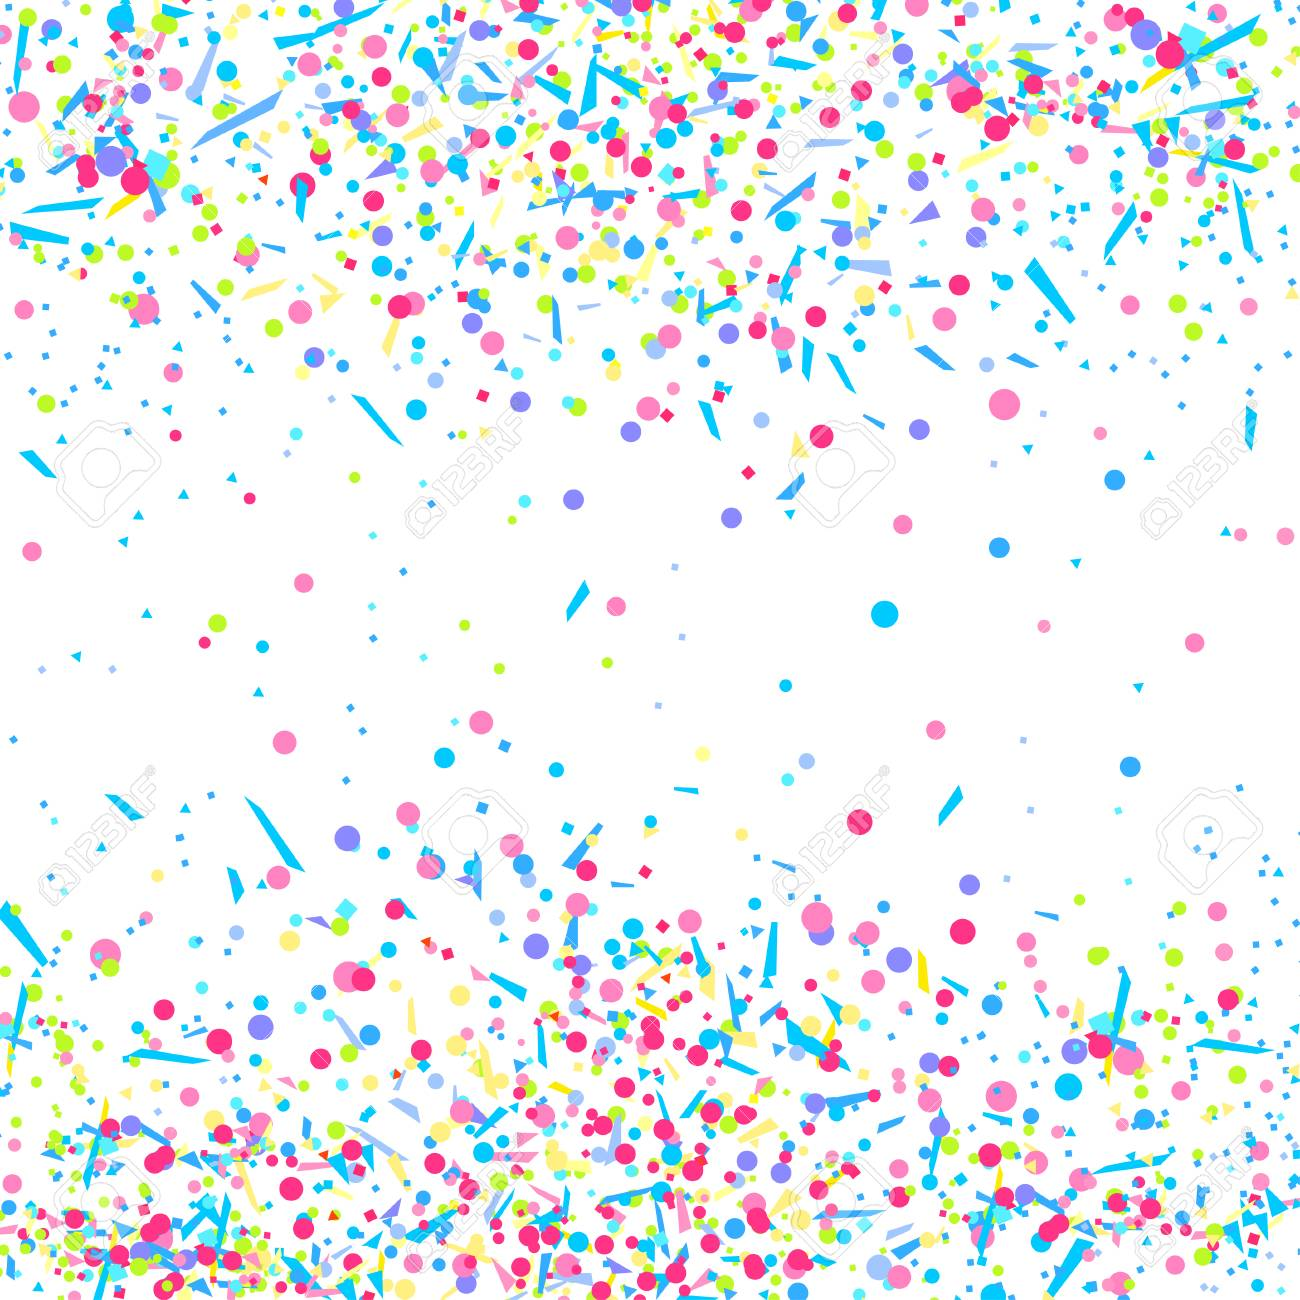 White Template | Colored Glitters On White Geometric Background With Confetti